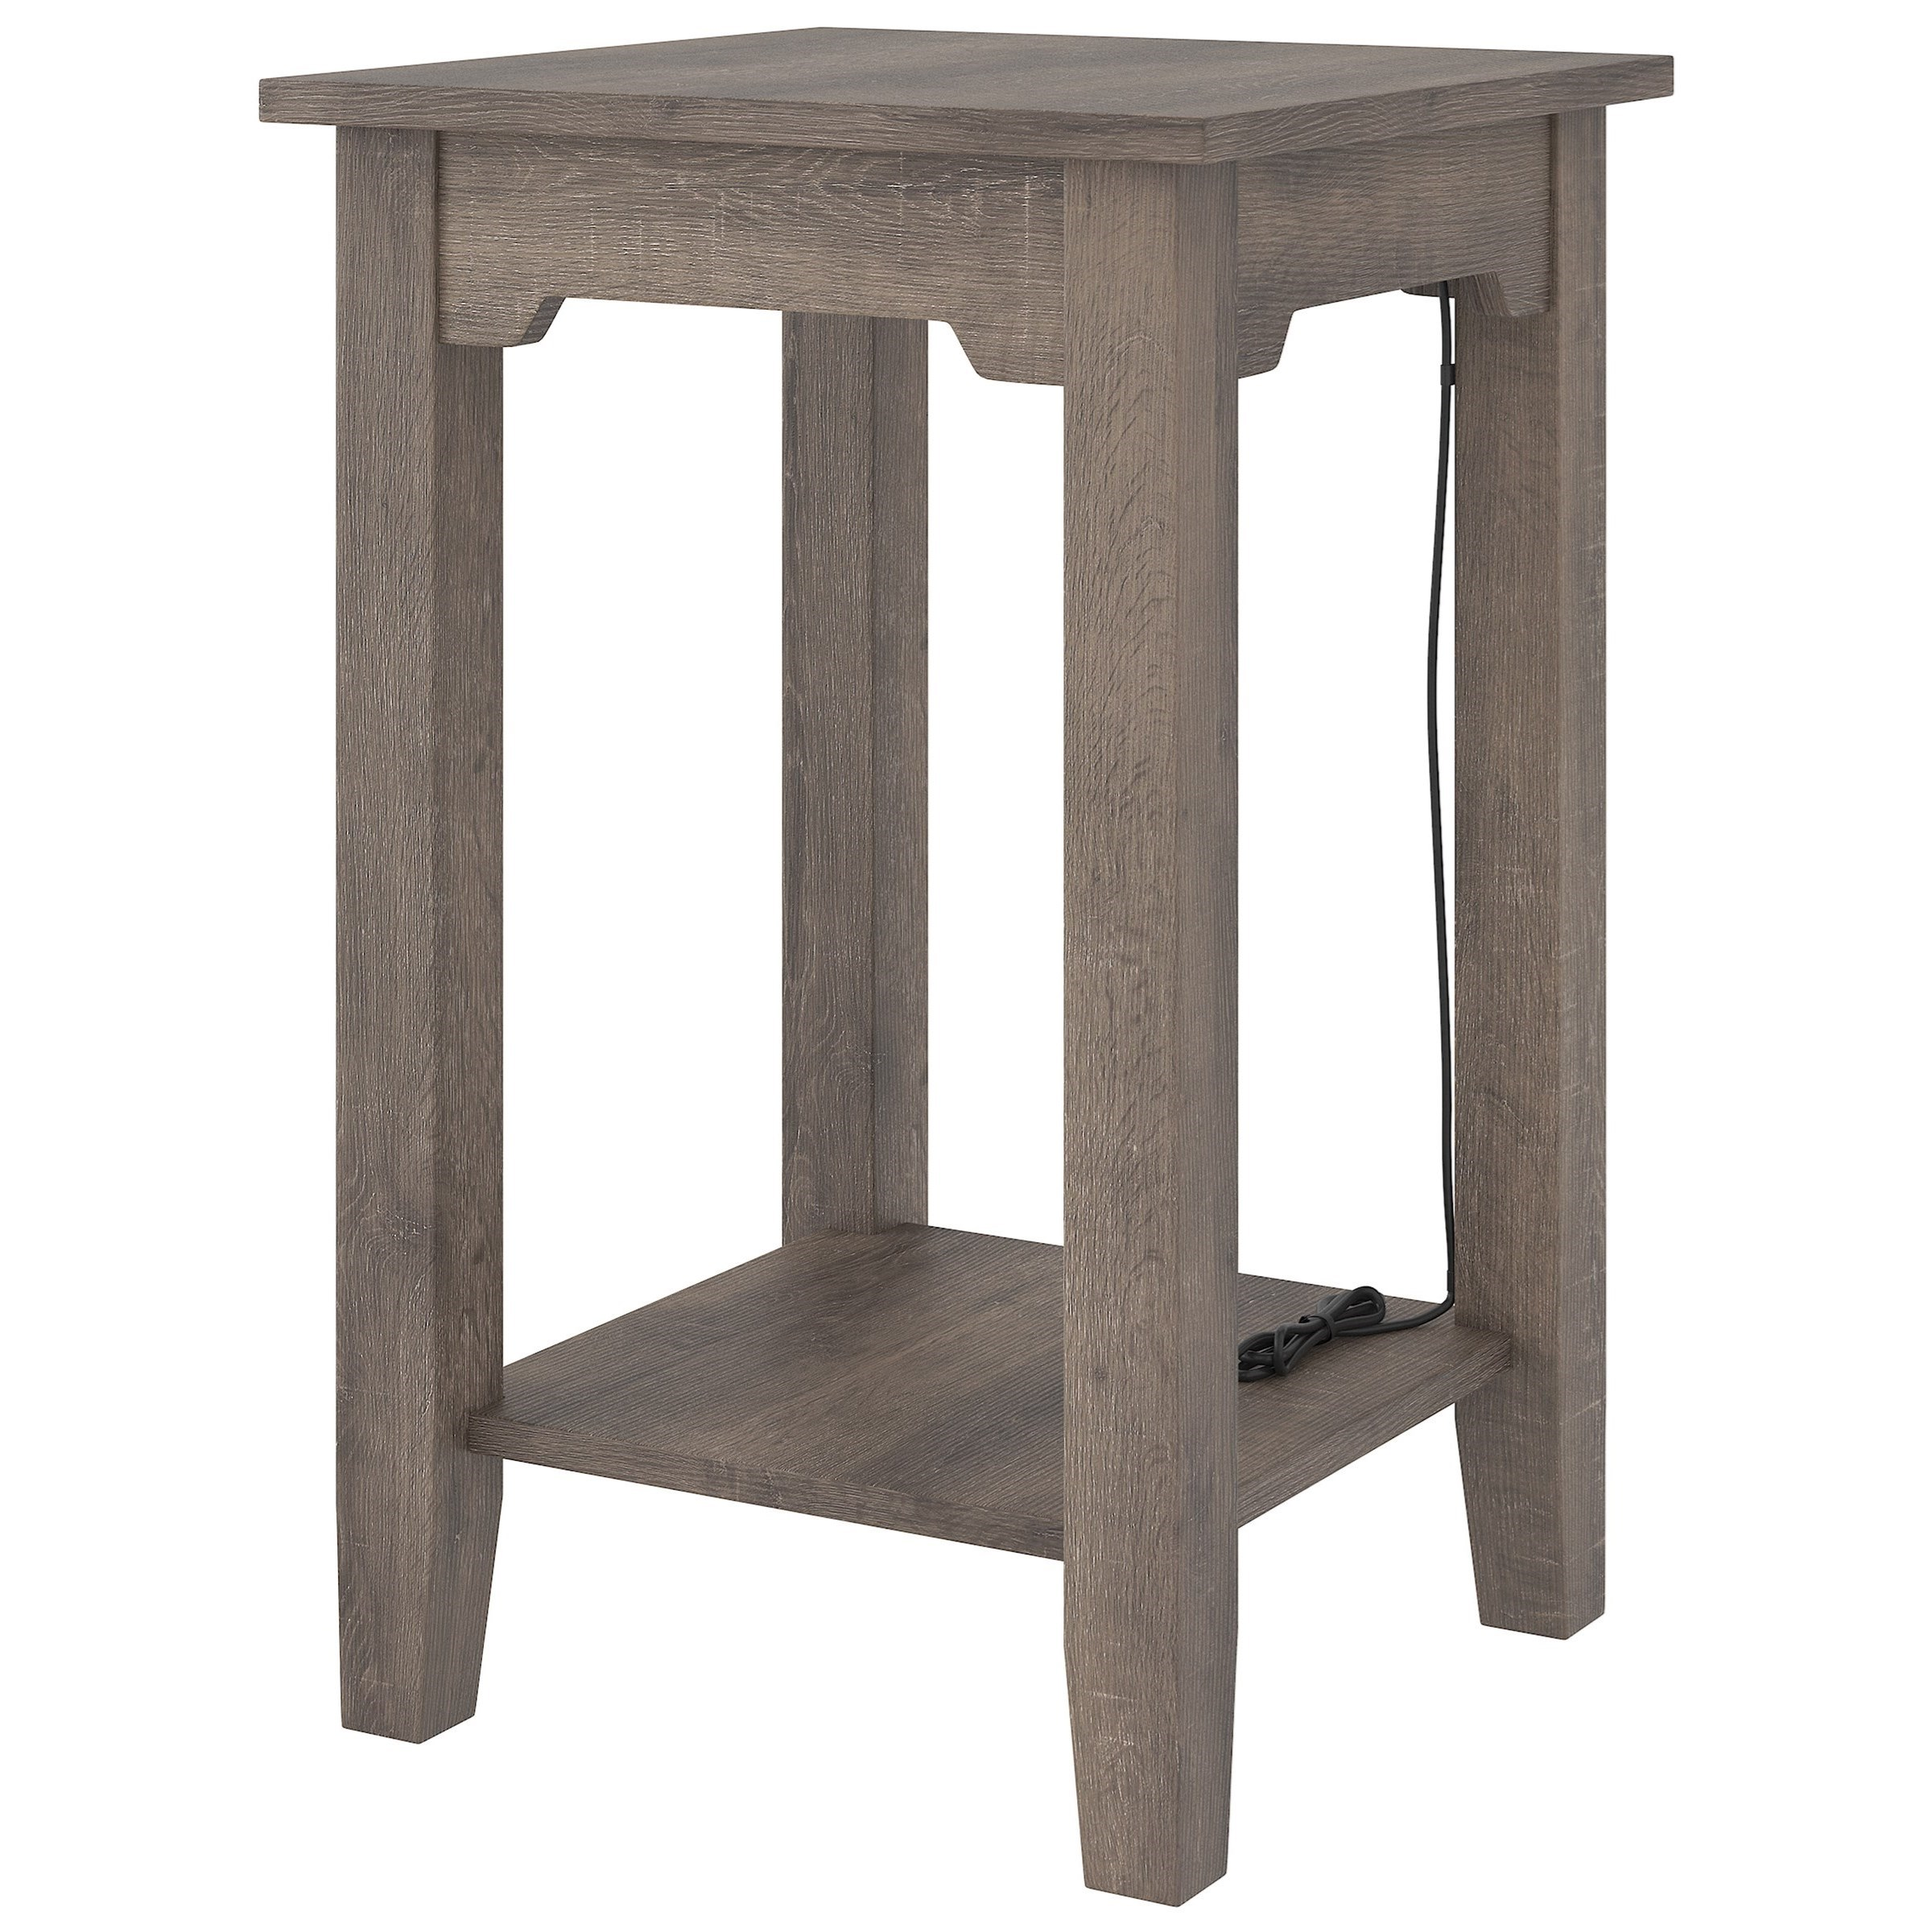 Arlenbry Chairside End Table by Signature Design by Ashley at Home Furnishings Direct